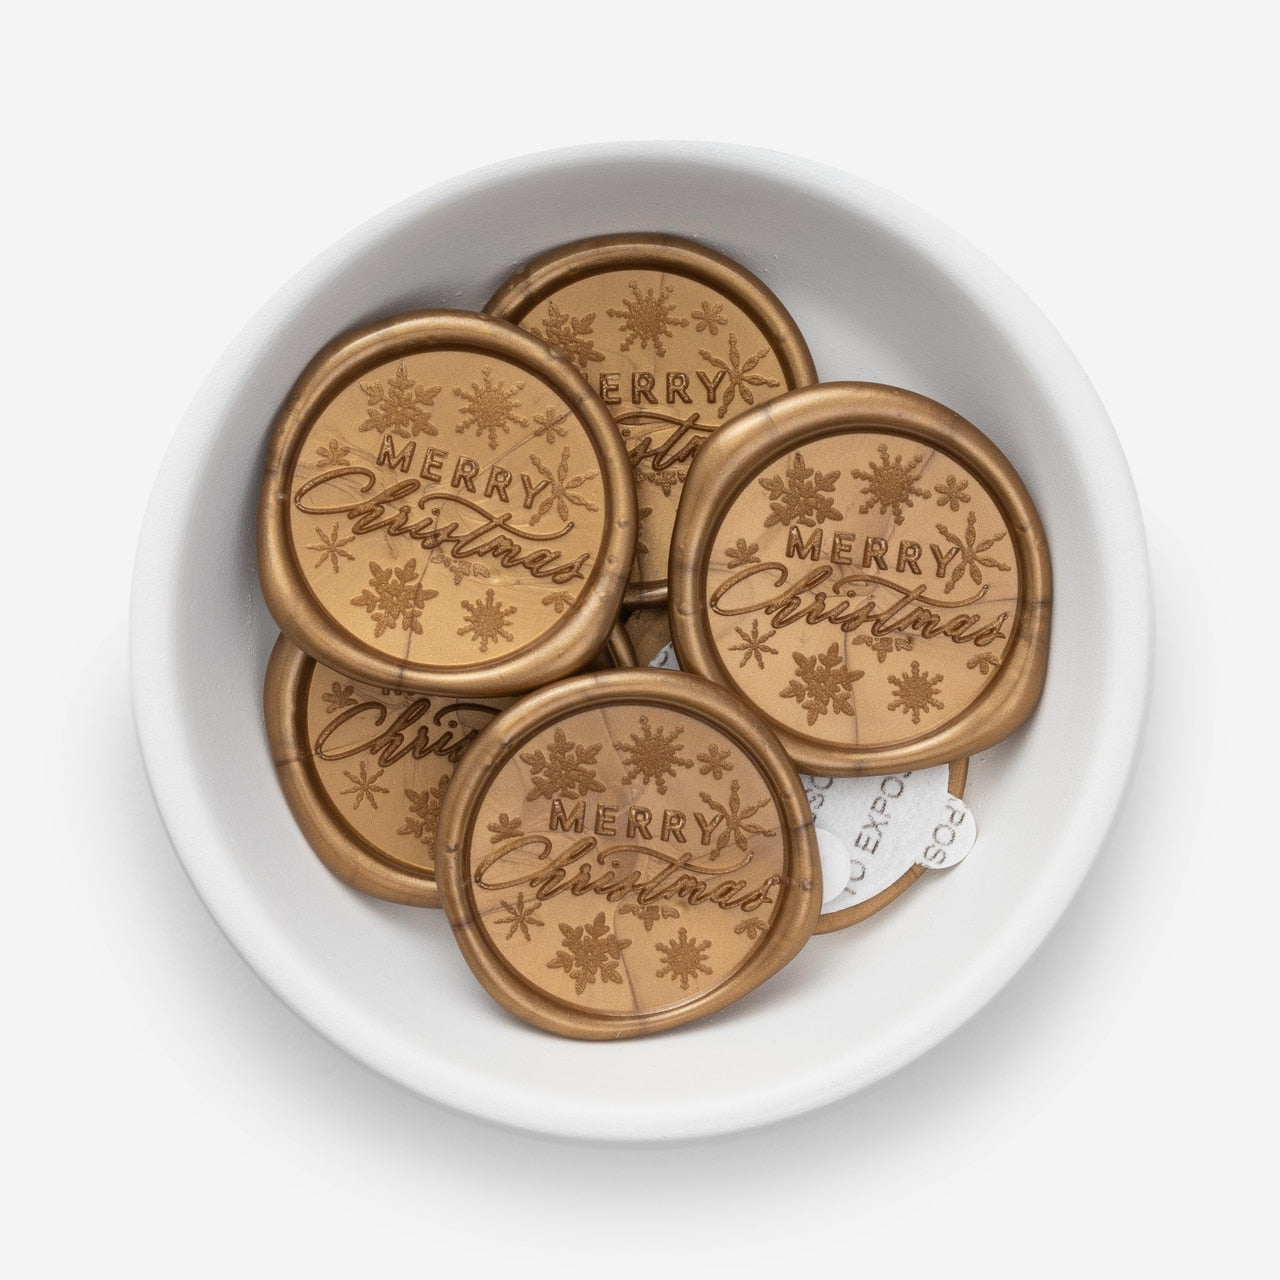 Merry Christmas Wax Seals - 25 Pack